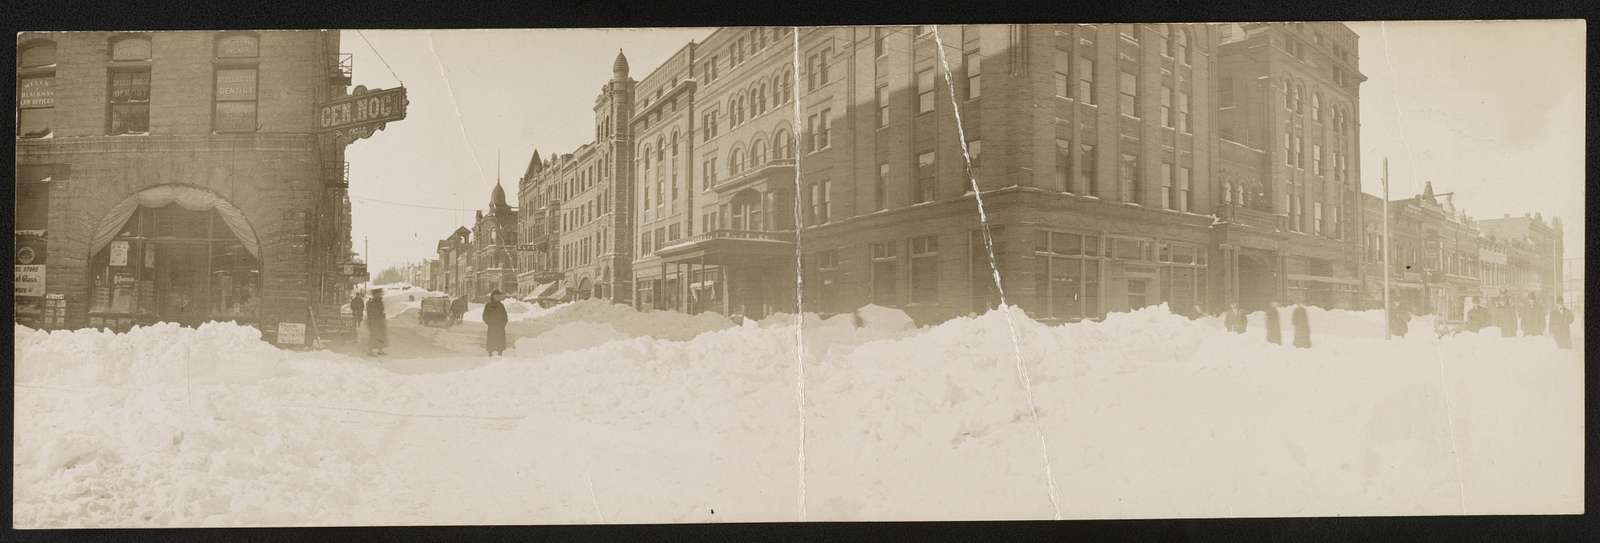 Ninth & Phillips Ave. after the storm, 1909, Sioux Falls, S. Dak.